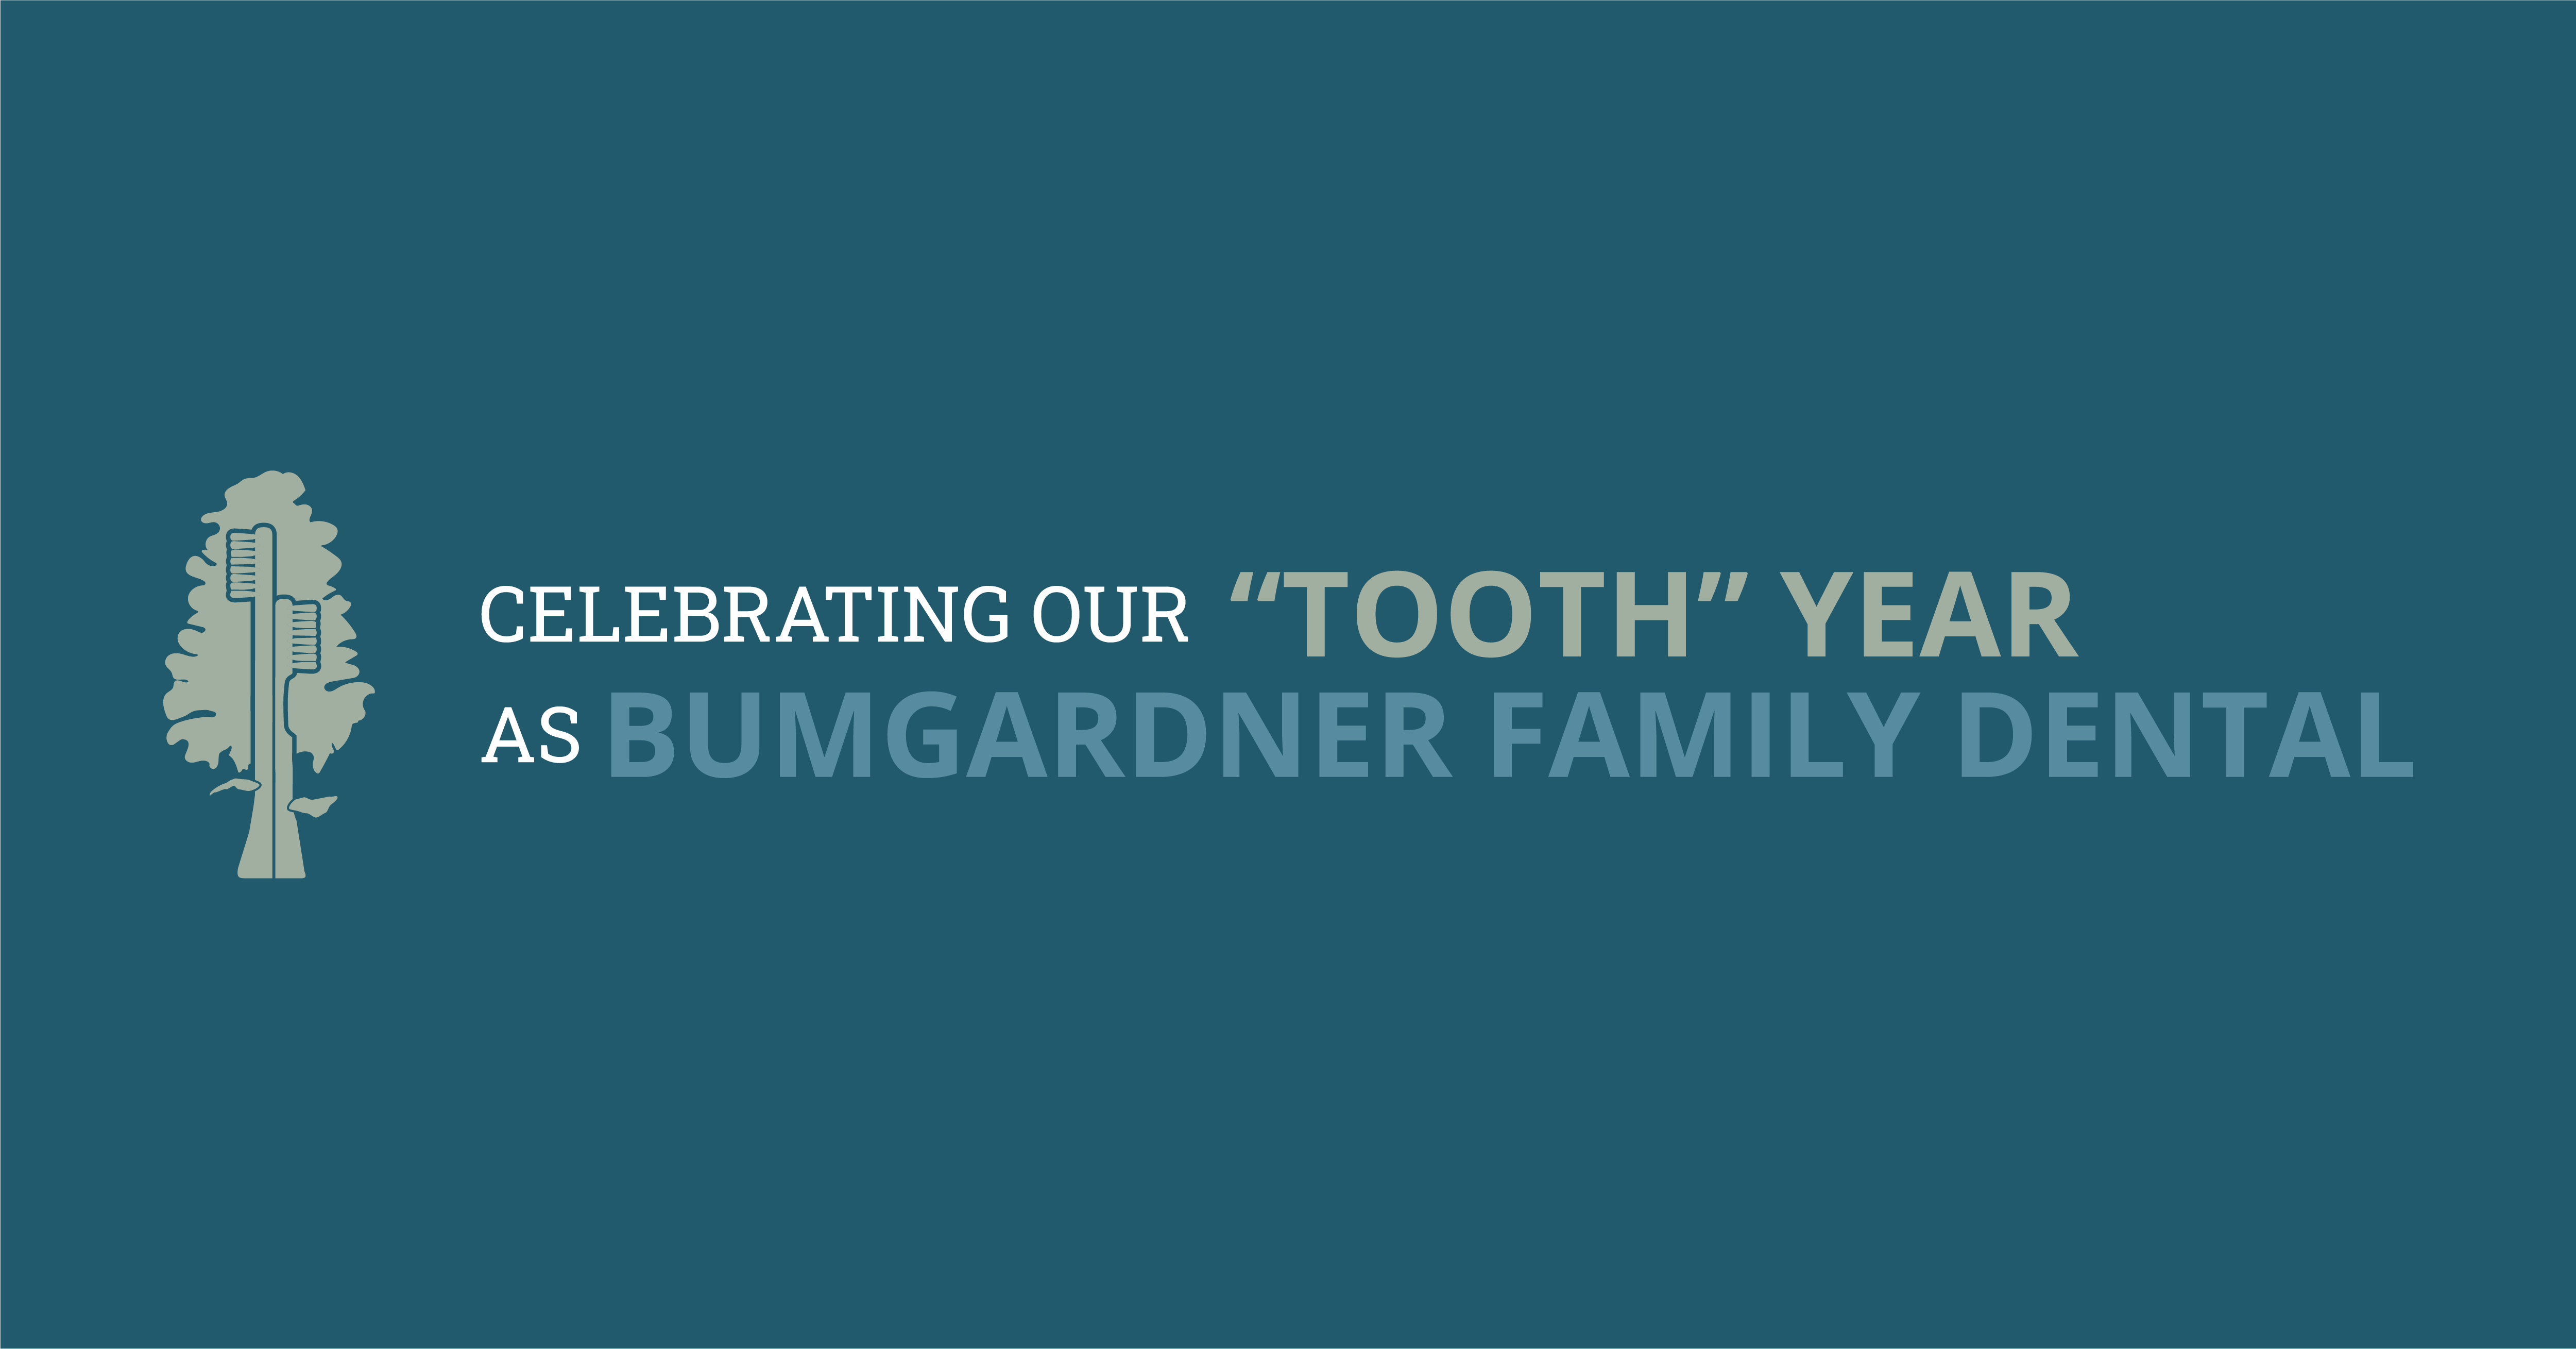 "Celebrating Our ""Tooth"" Year as Bumgardner Family Dental"